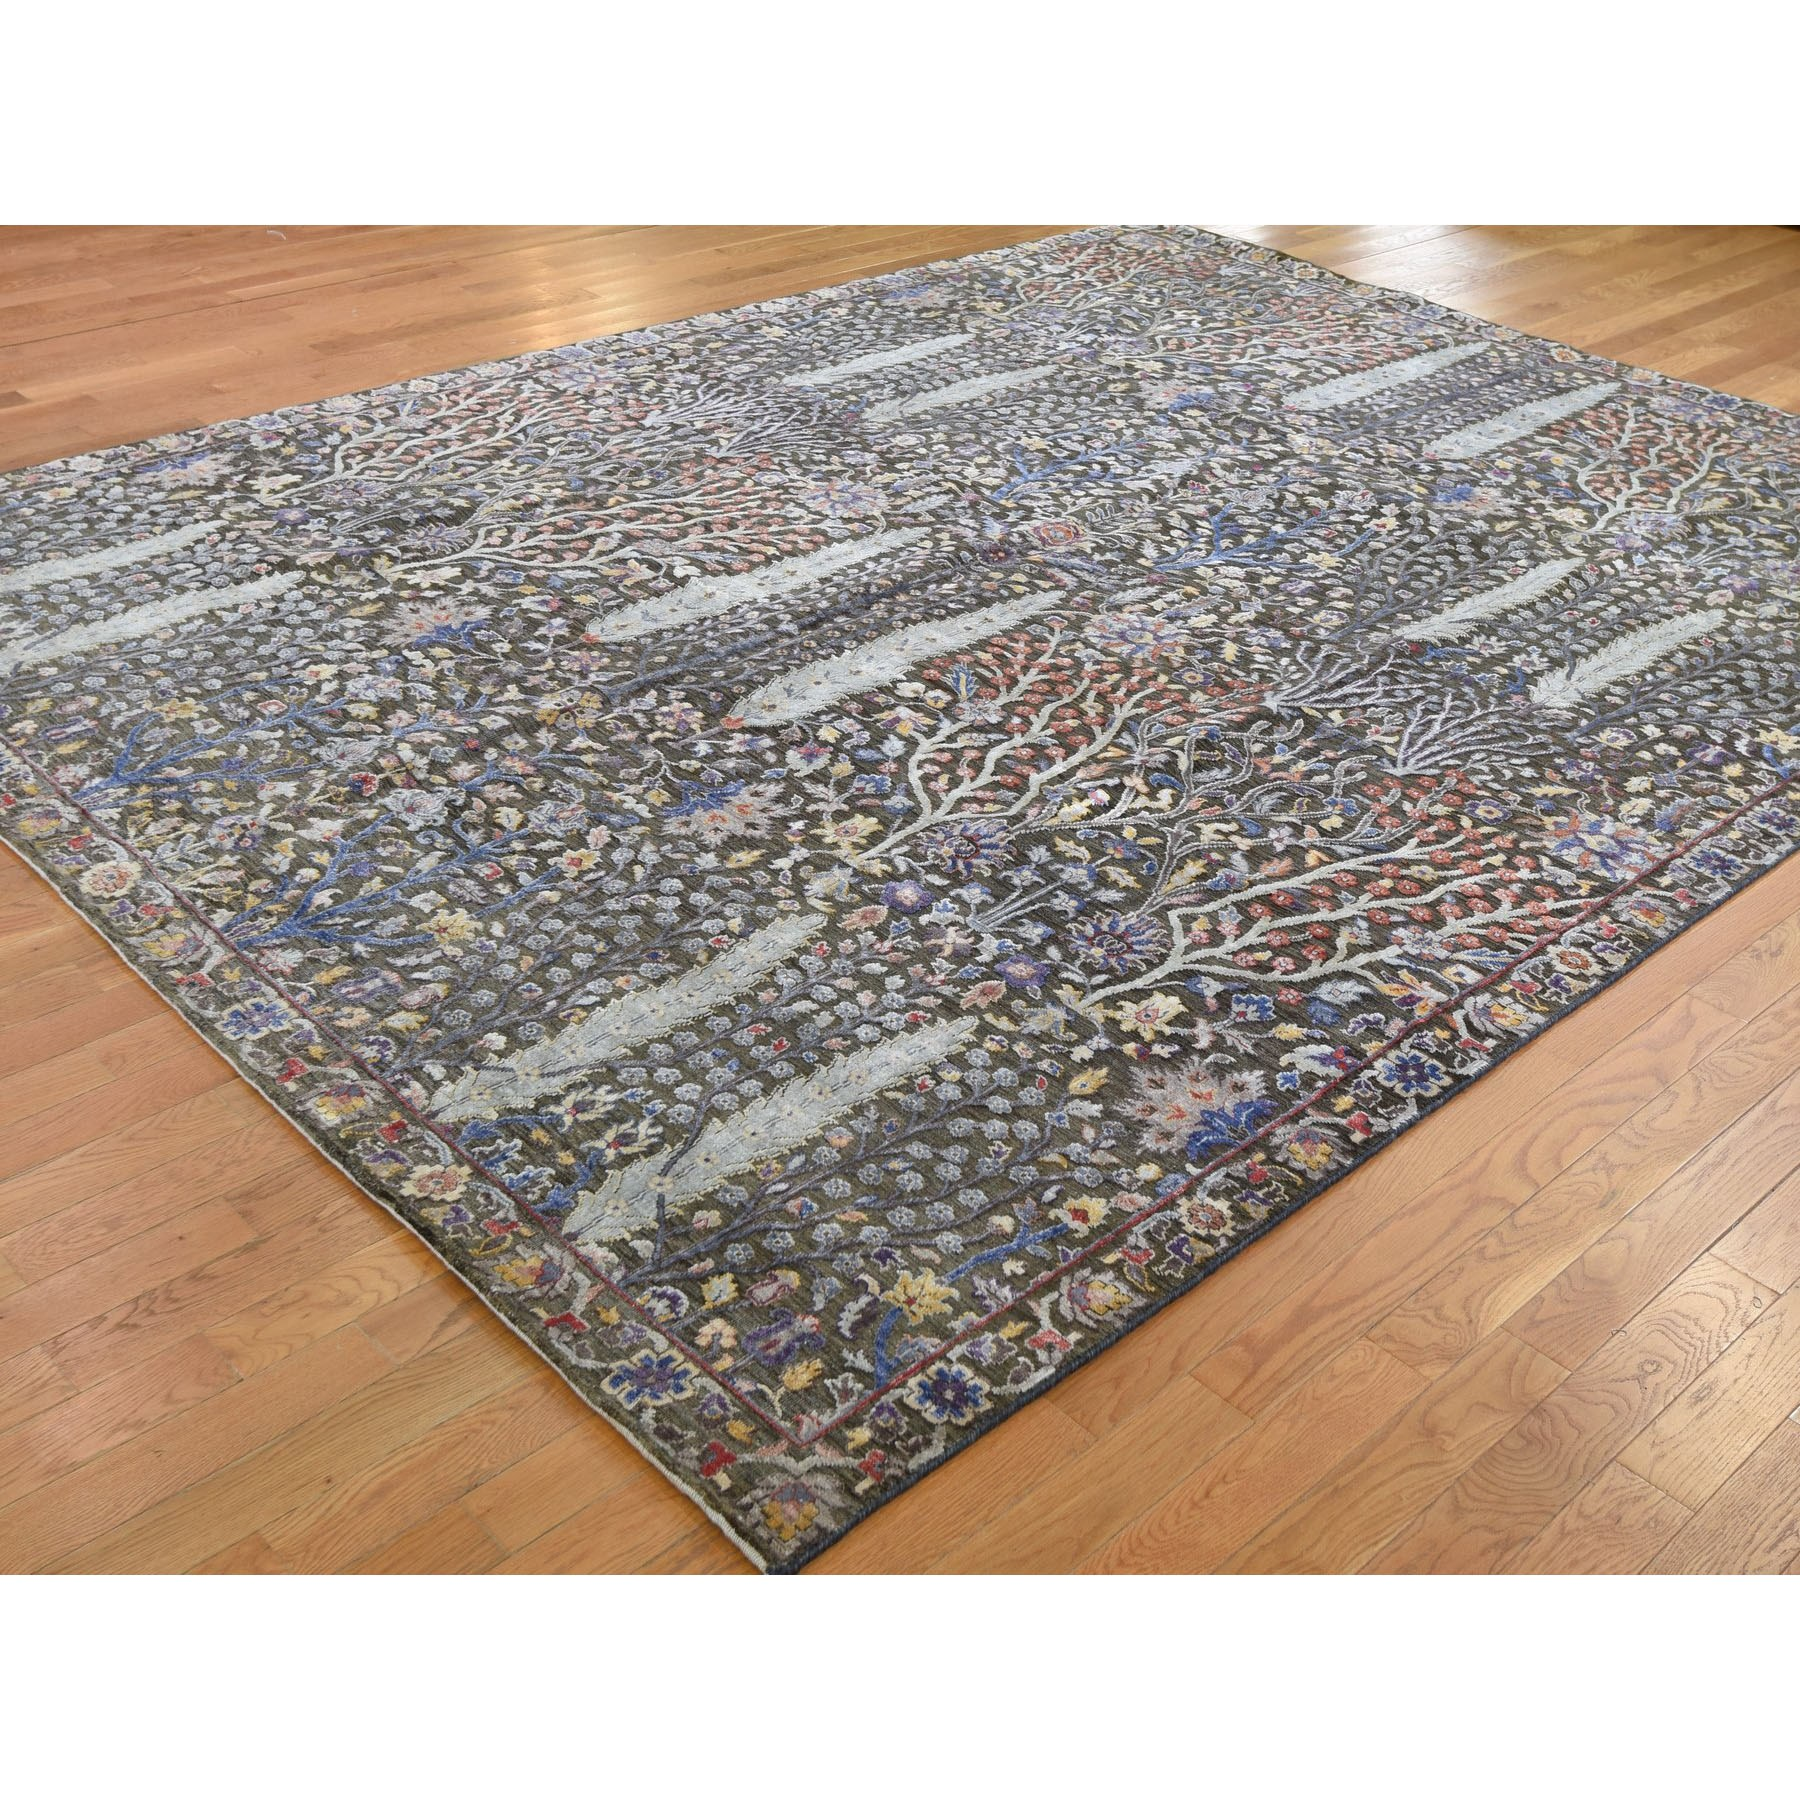 9'1x12' Willow And Cypress Tree Design Silk With Textured Wool Hand Knotted Oriental Rug